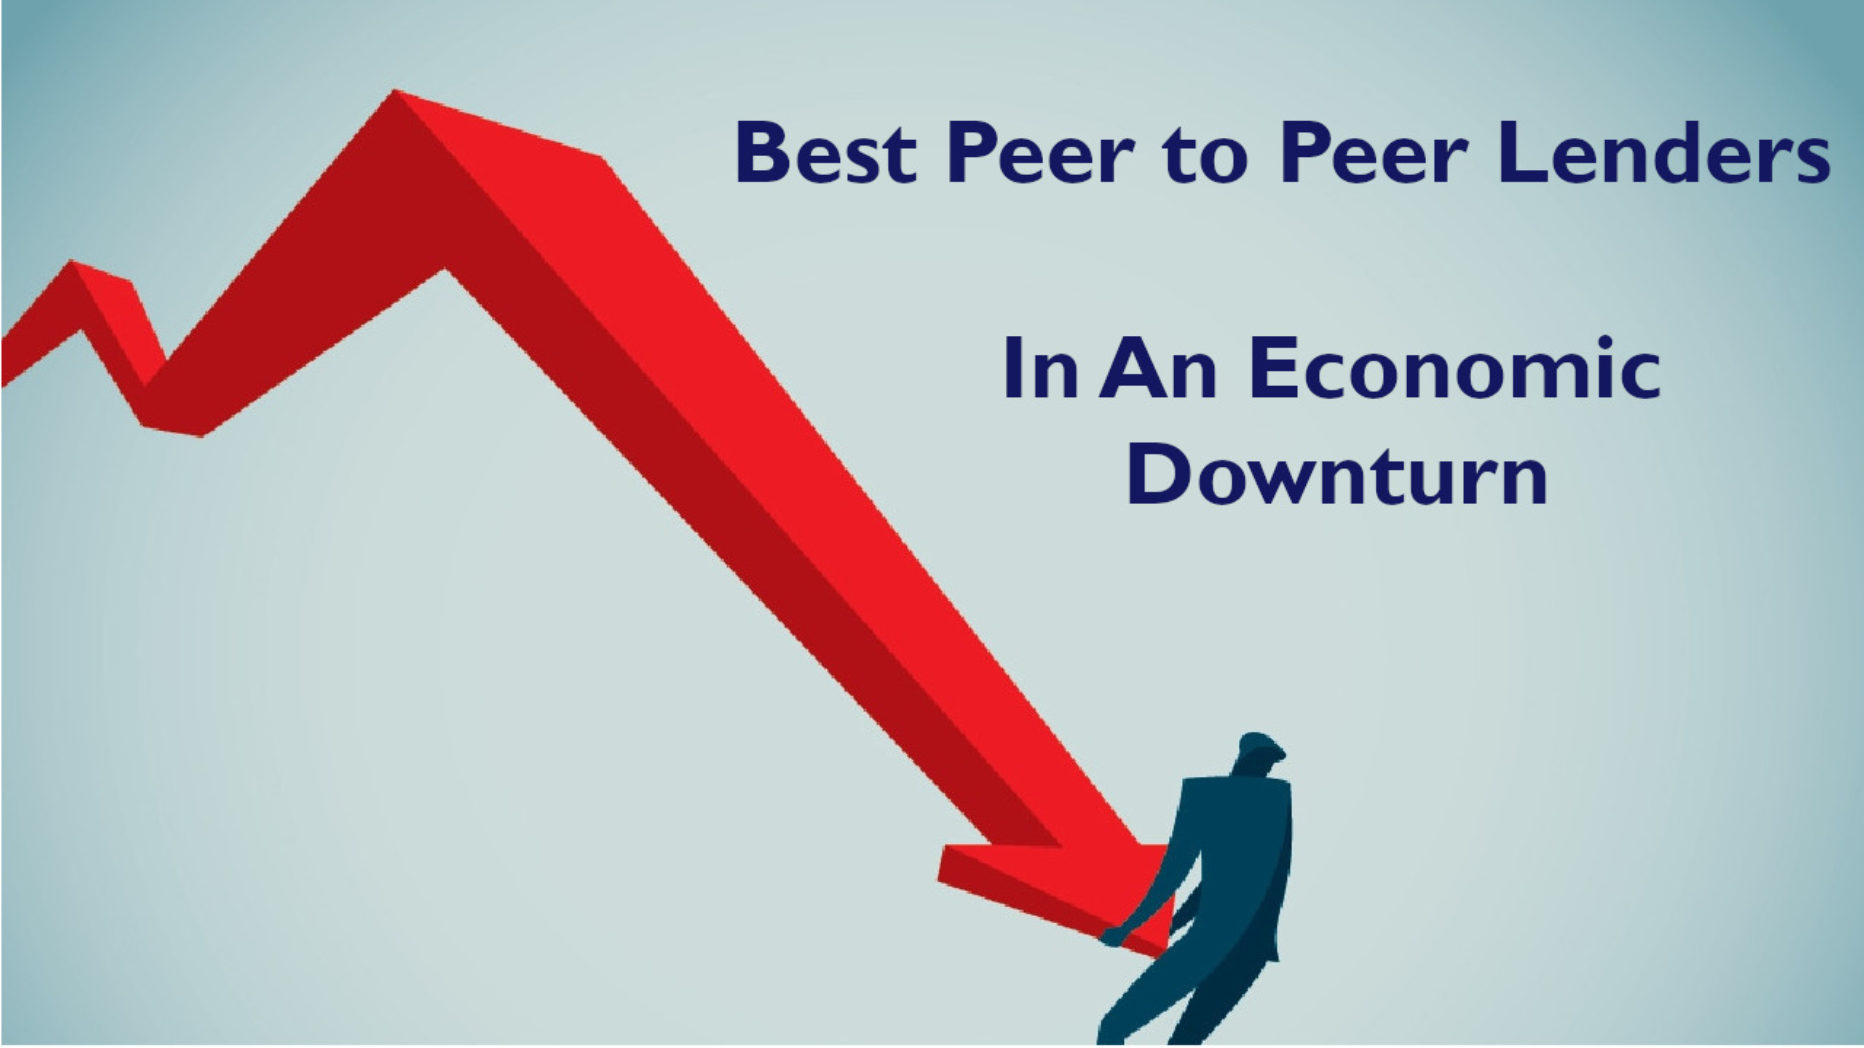 Best Peer to Peer Lenders For An Economic Downturn